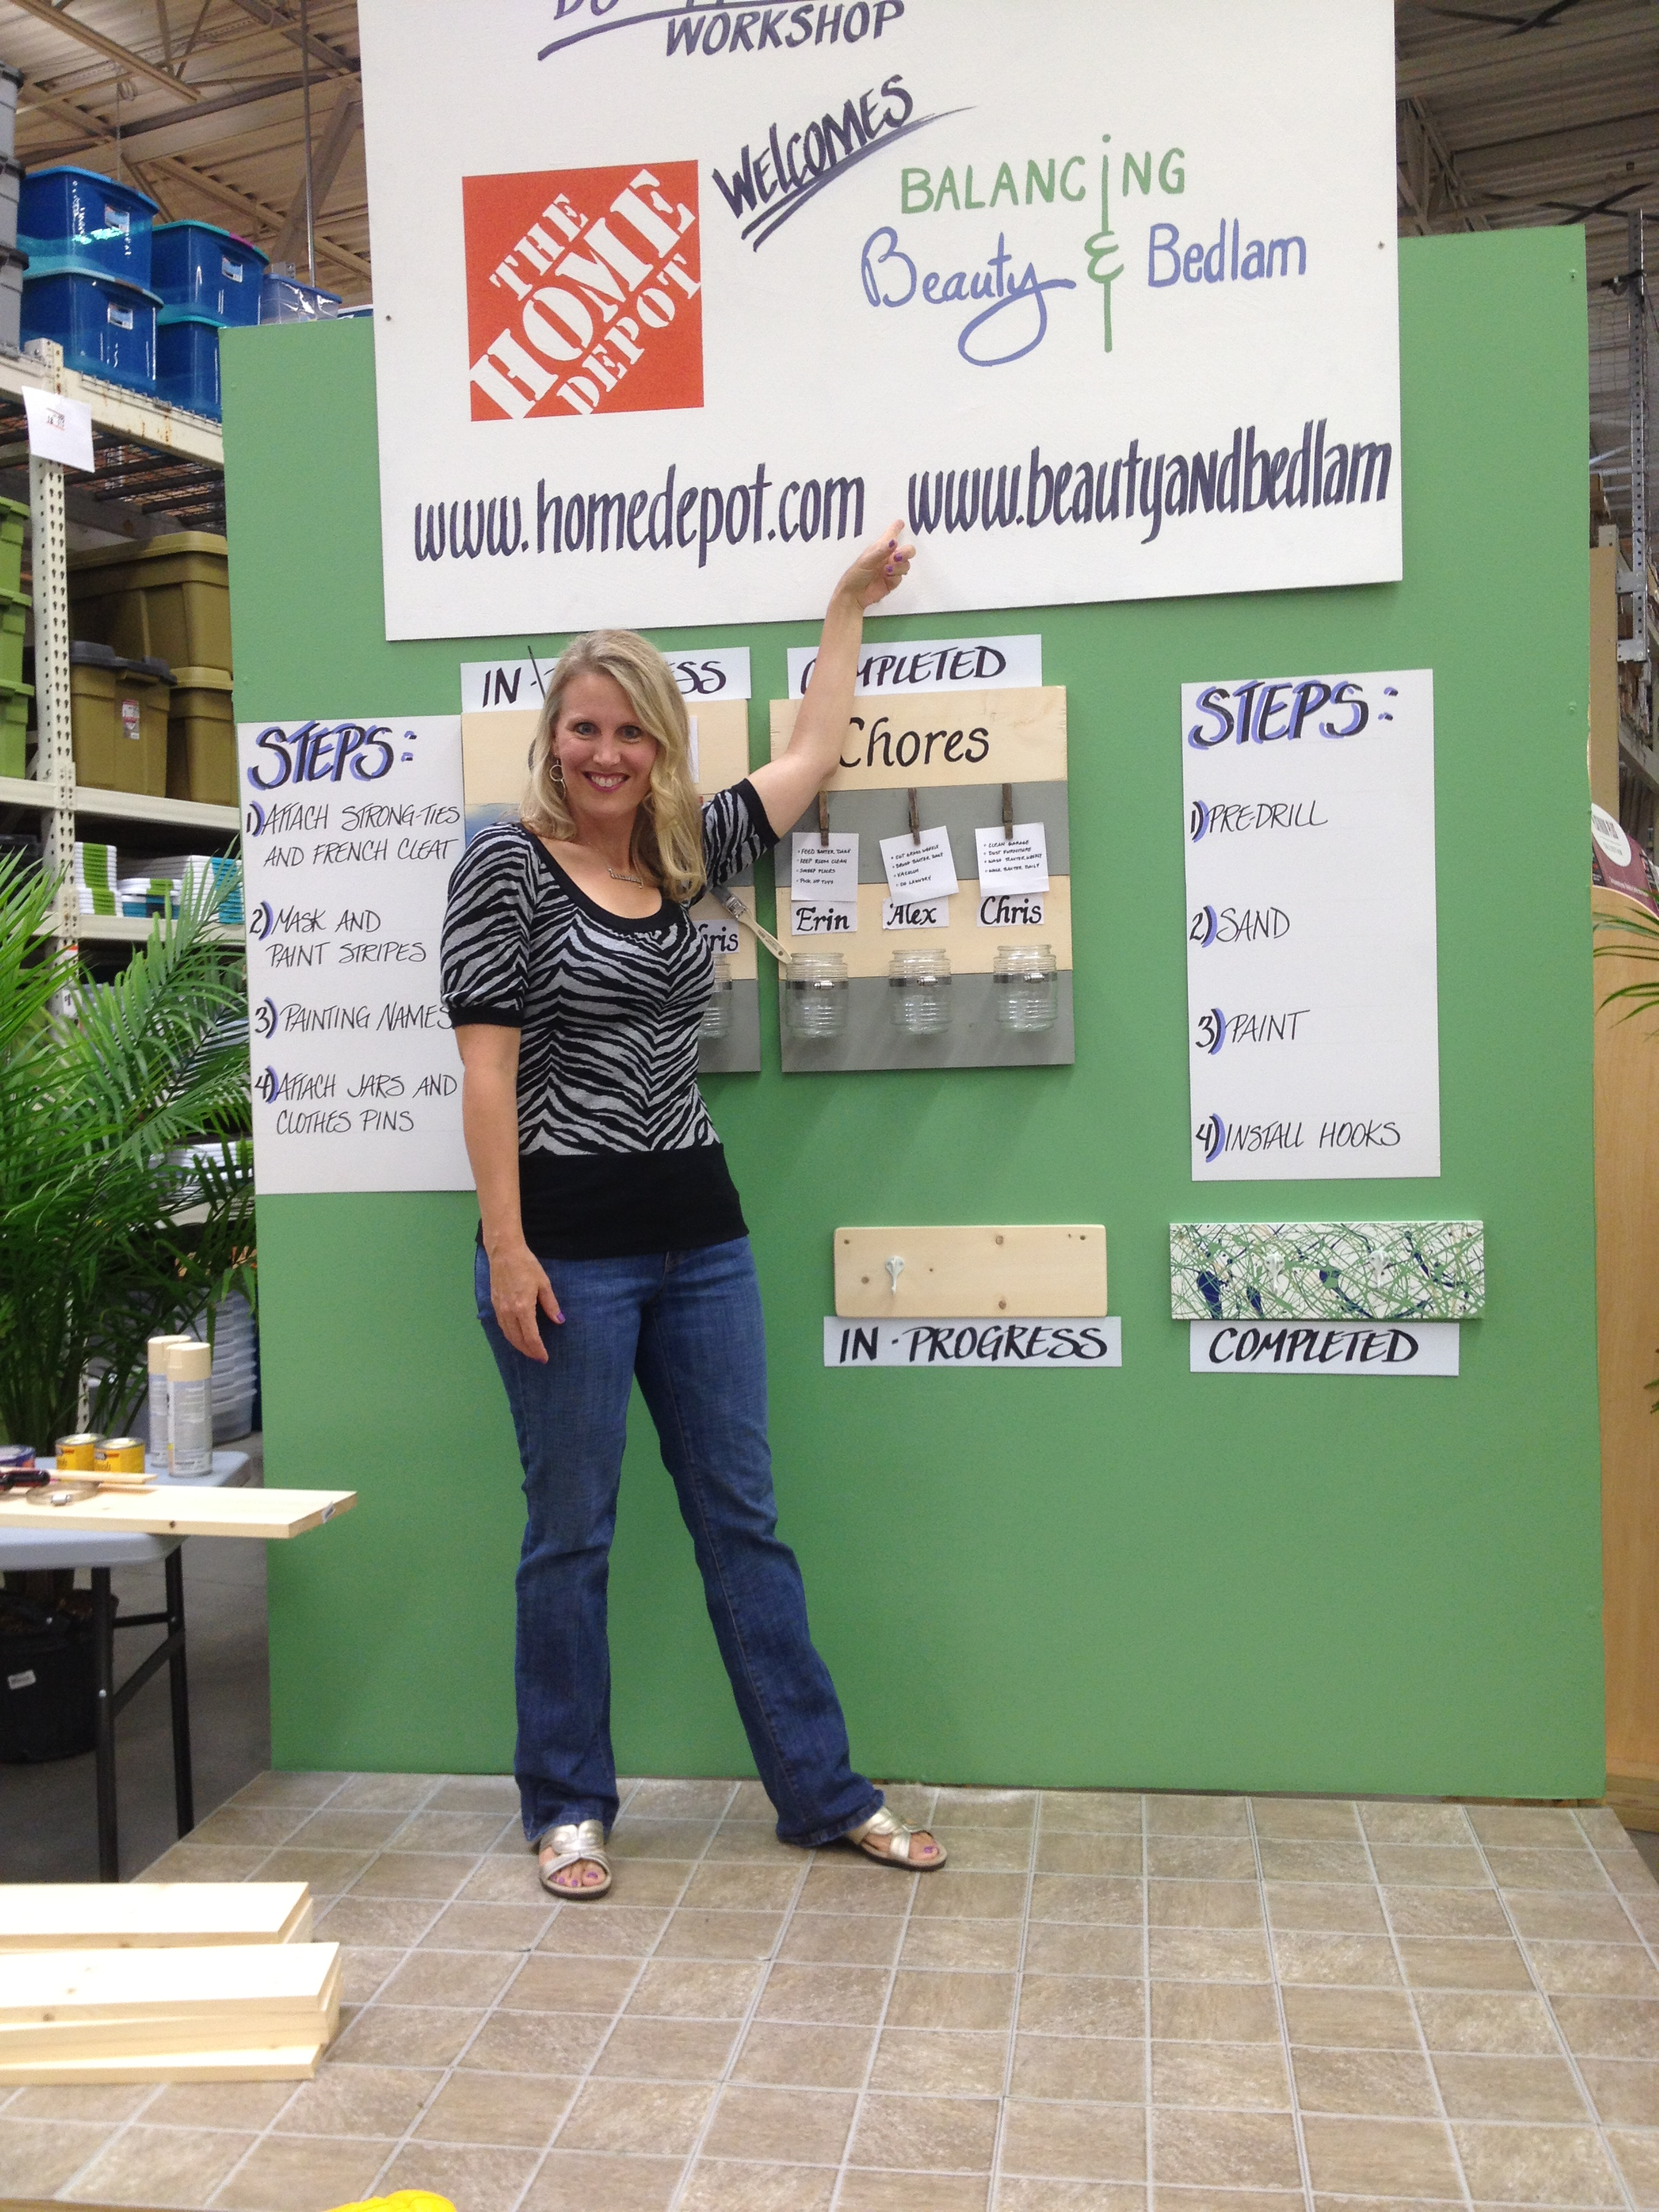 My project home depot